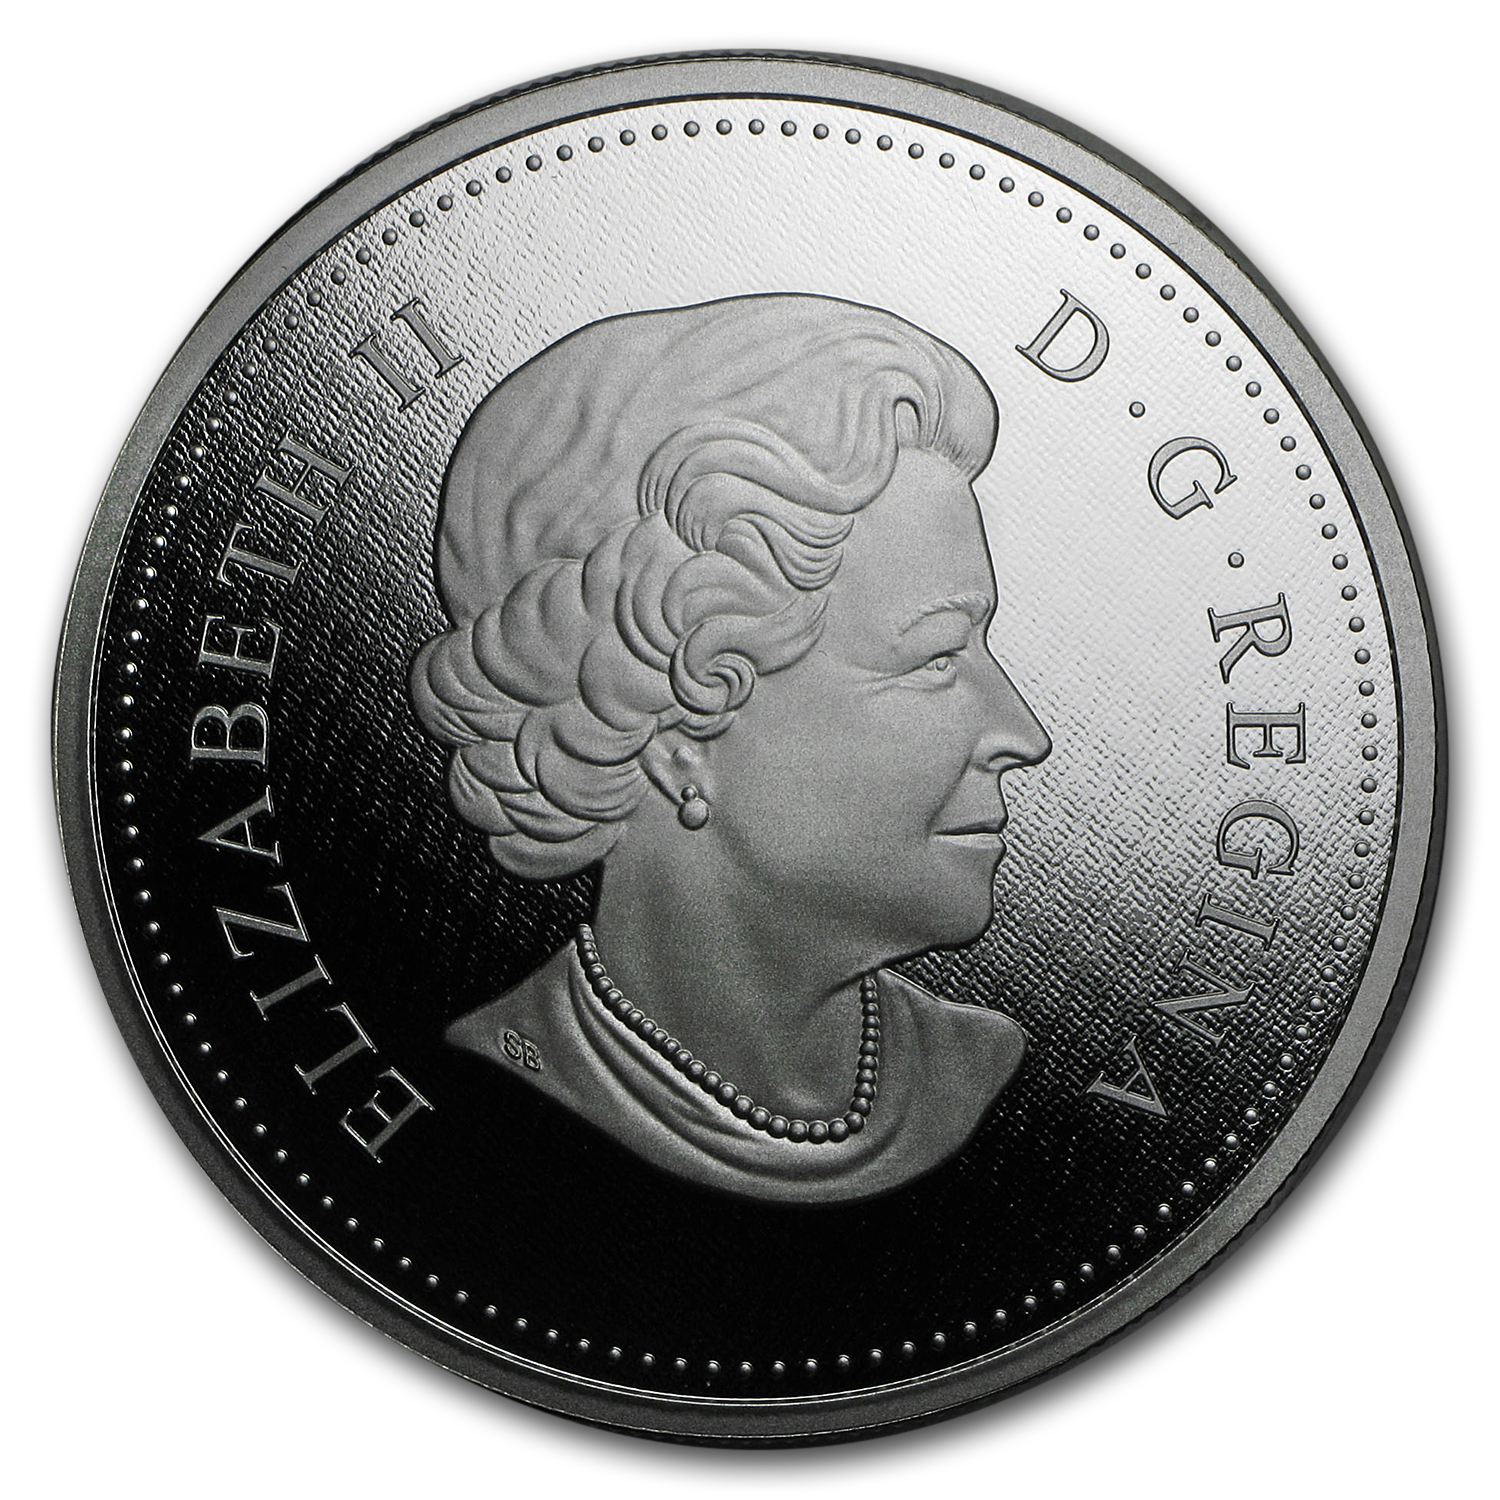 2012 Canada 5 oz Silver Farewell to the Penny